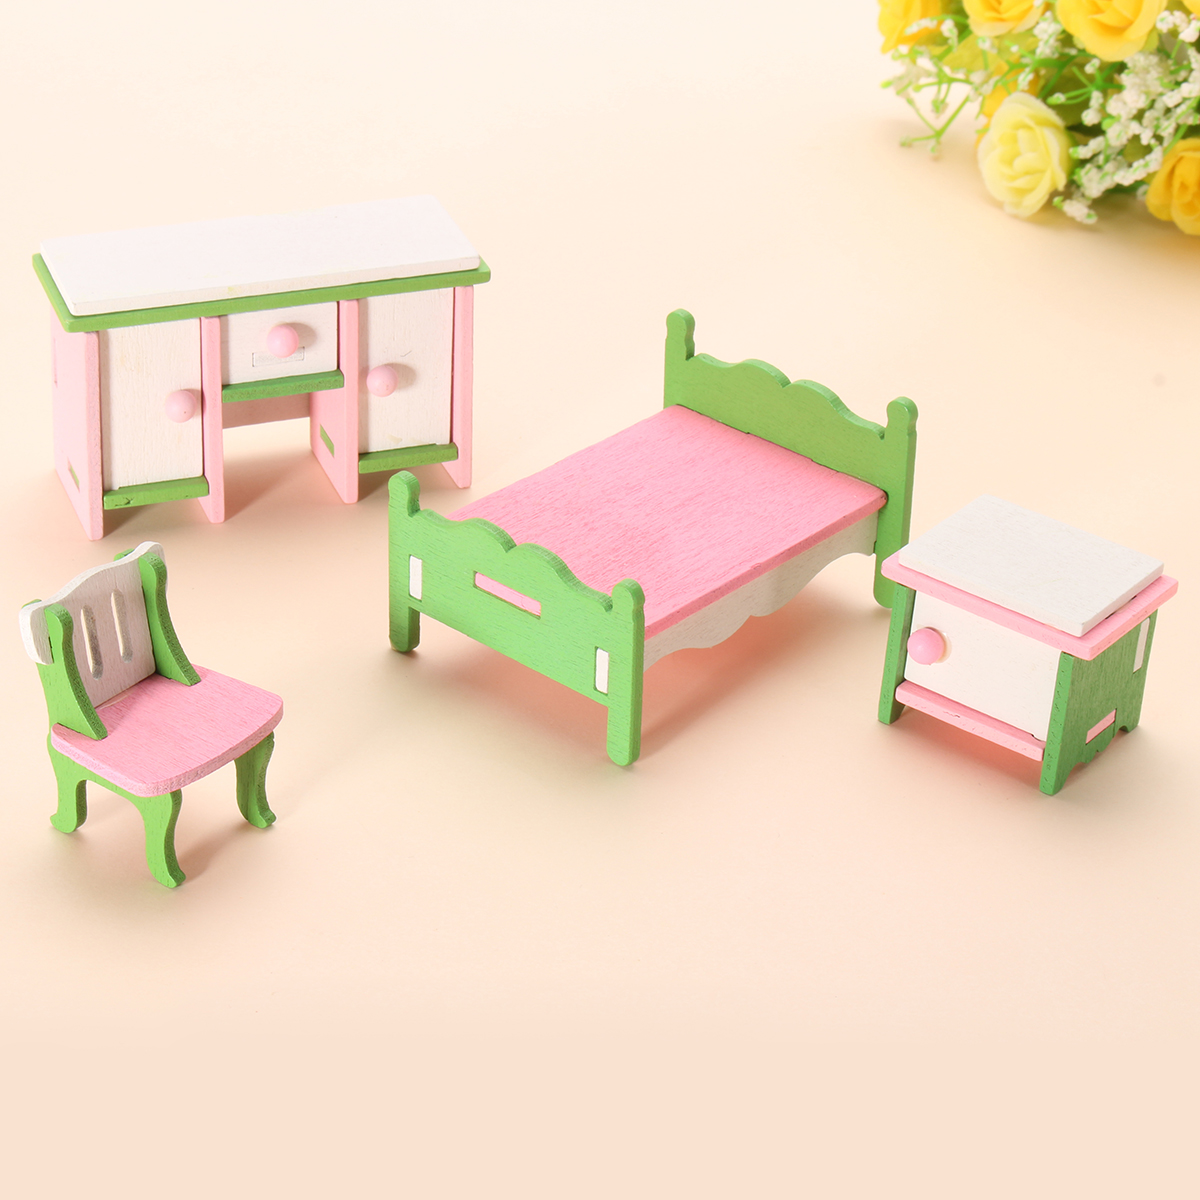 11 Set Wooden Furniture Dolls House Family Miniature For